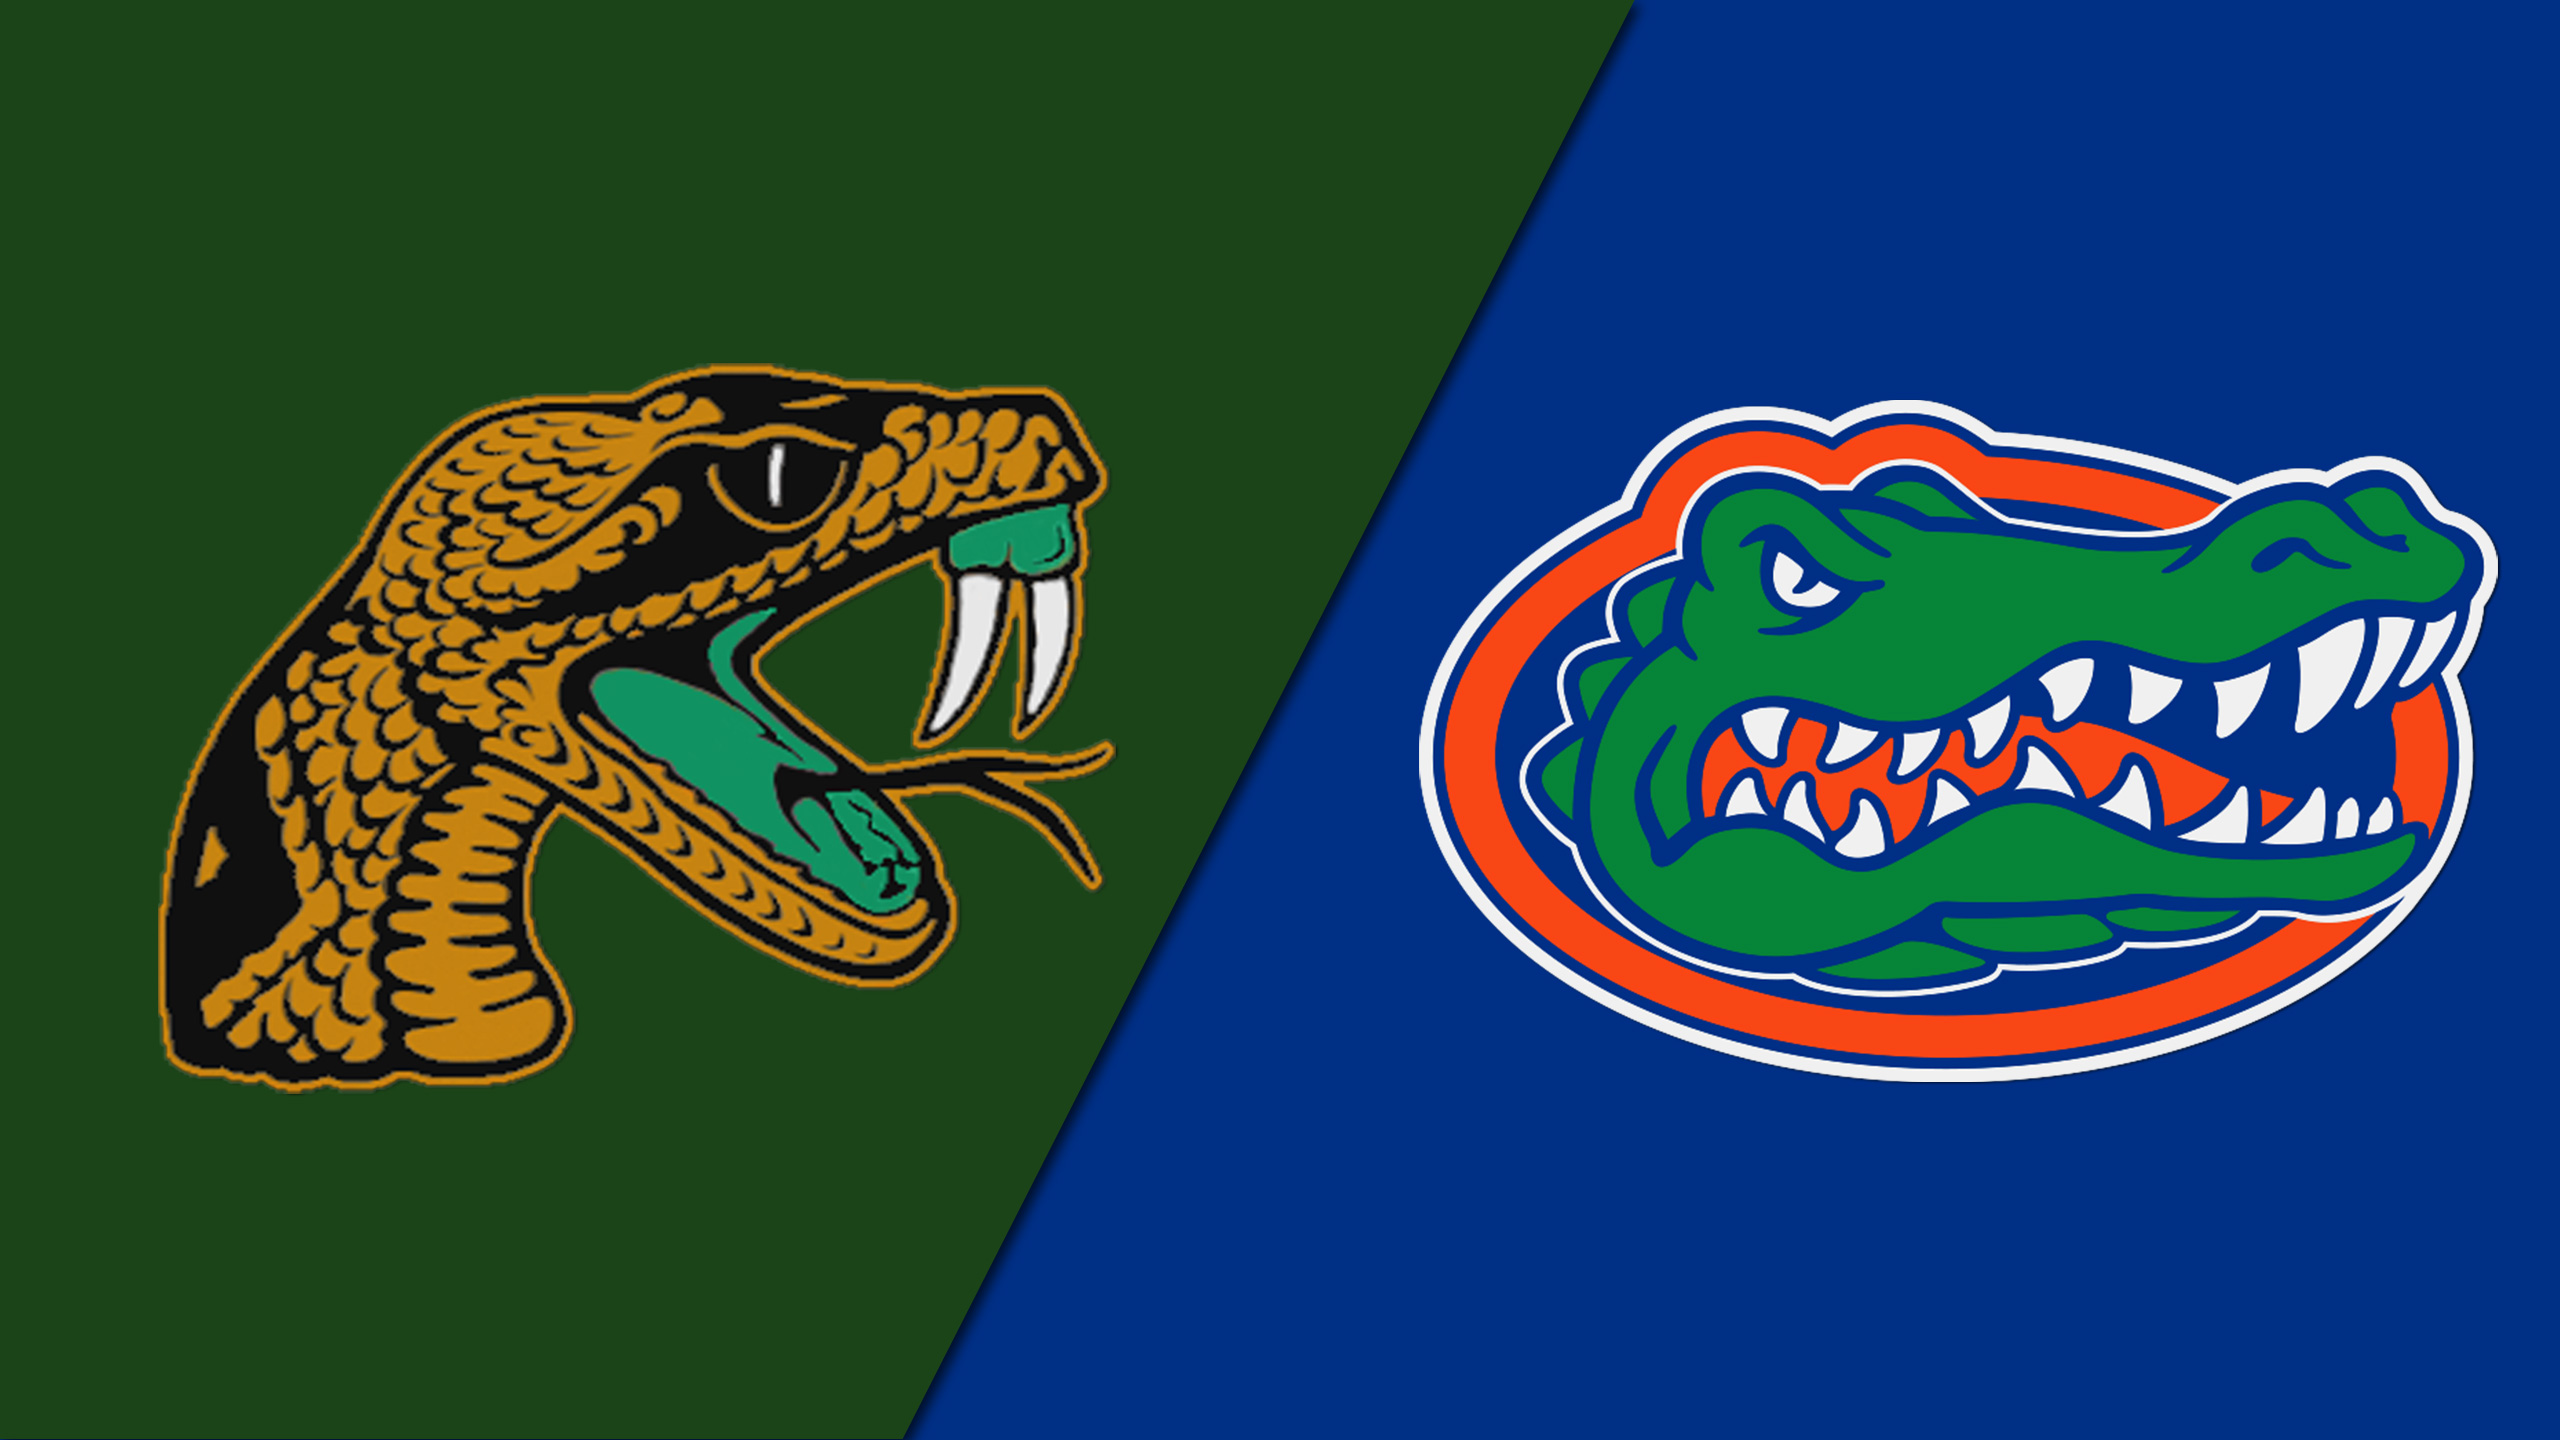 Florida A&M vs. Florida